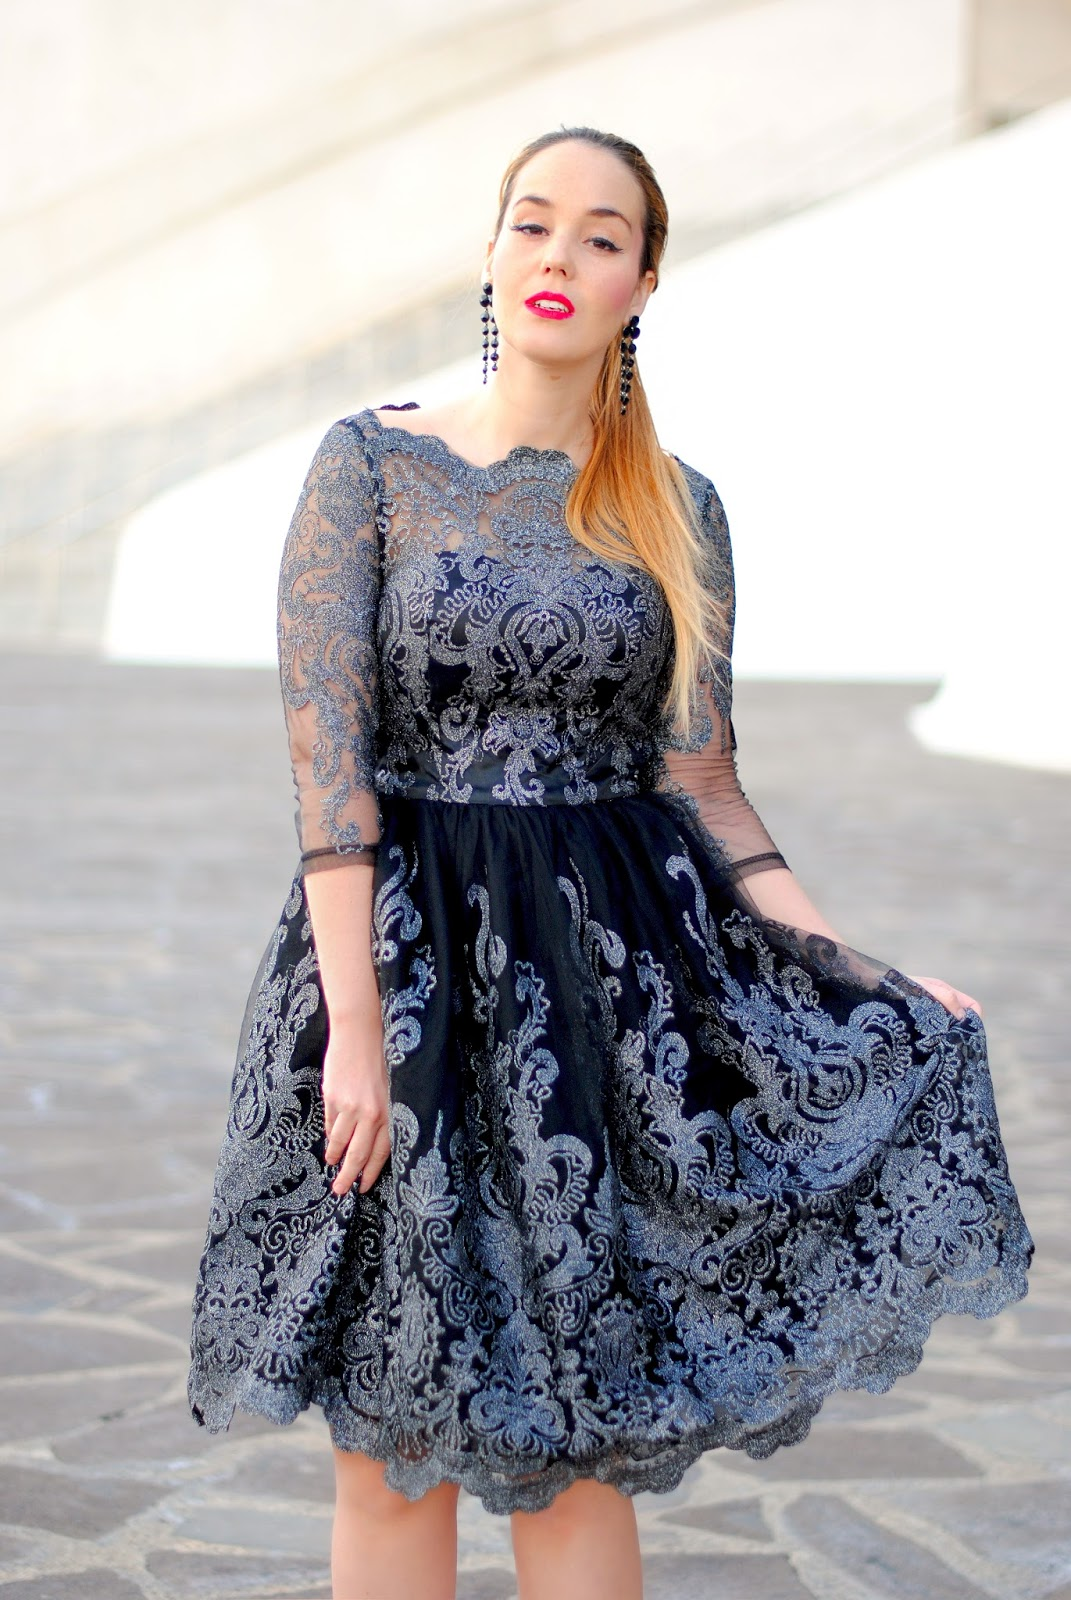 nery hdez, chic chi, lottie dress, baroque dress, dresses for events, vestido para graduación